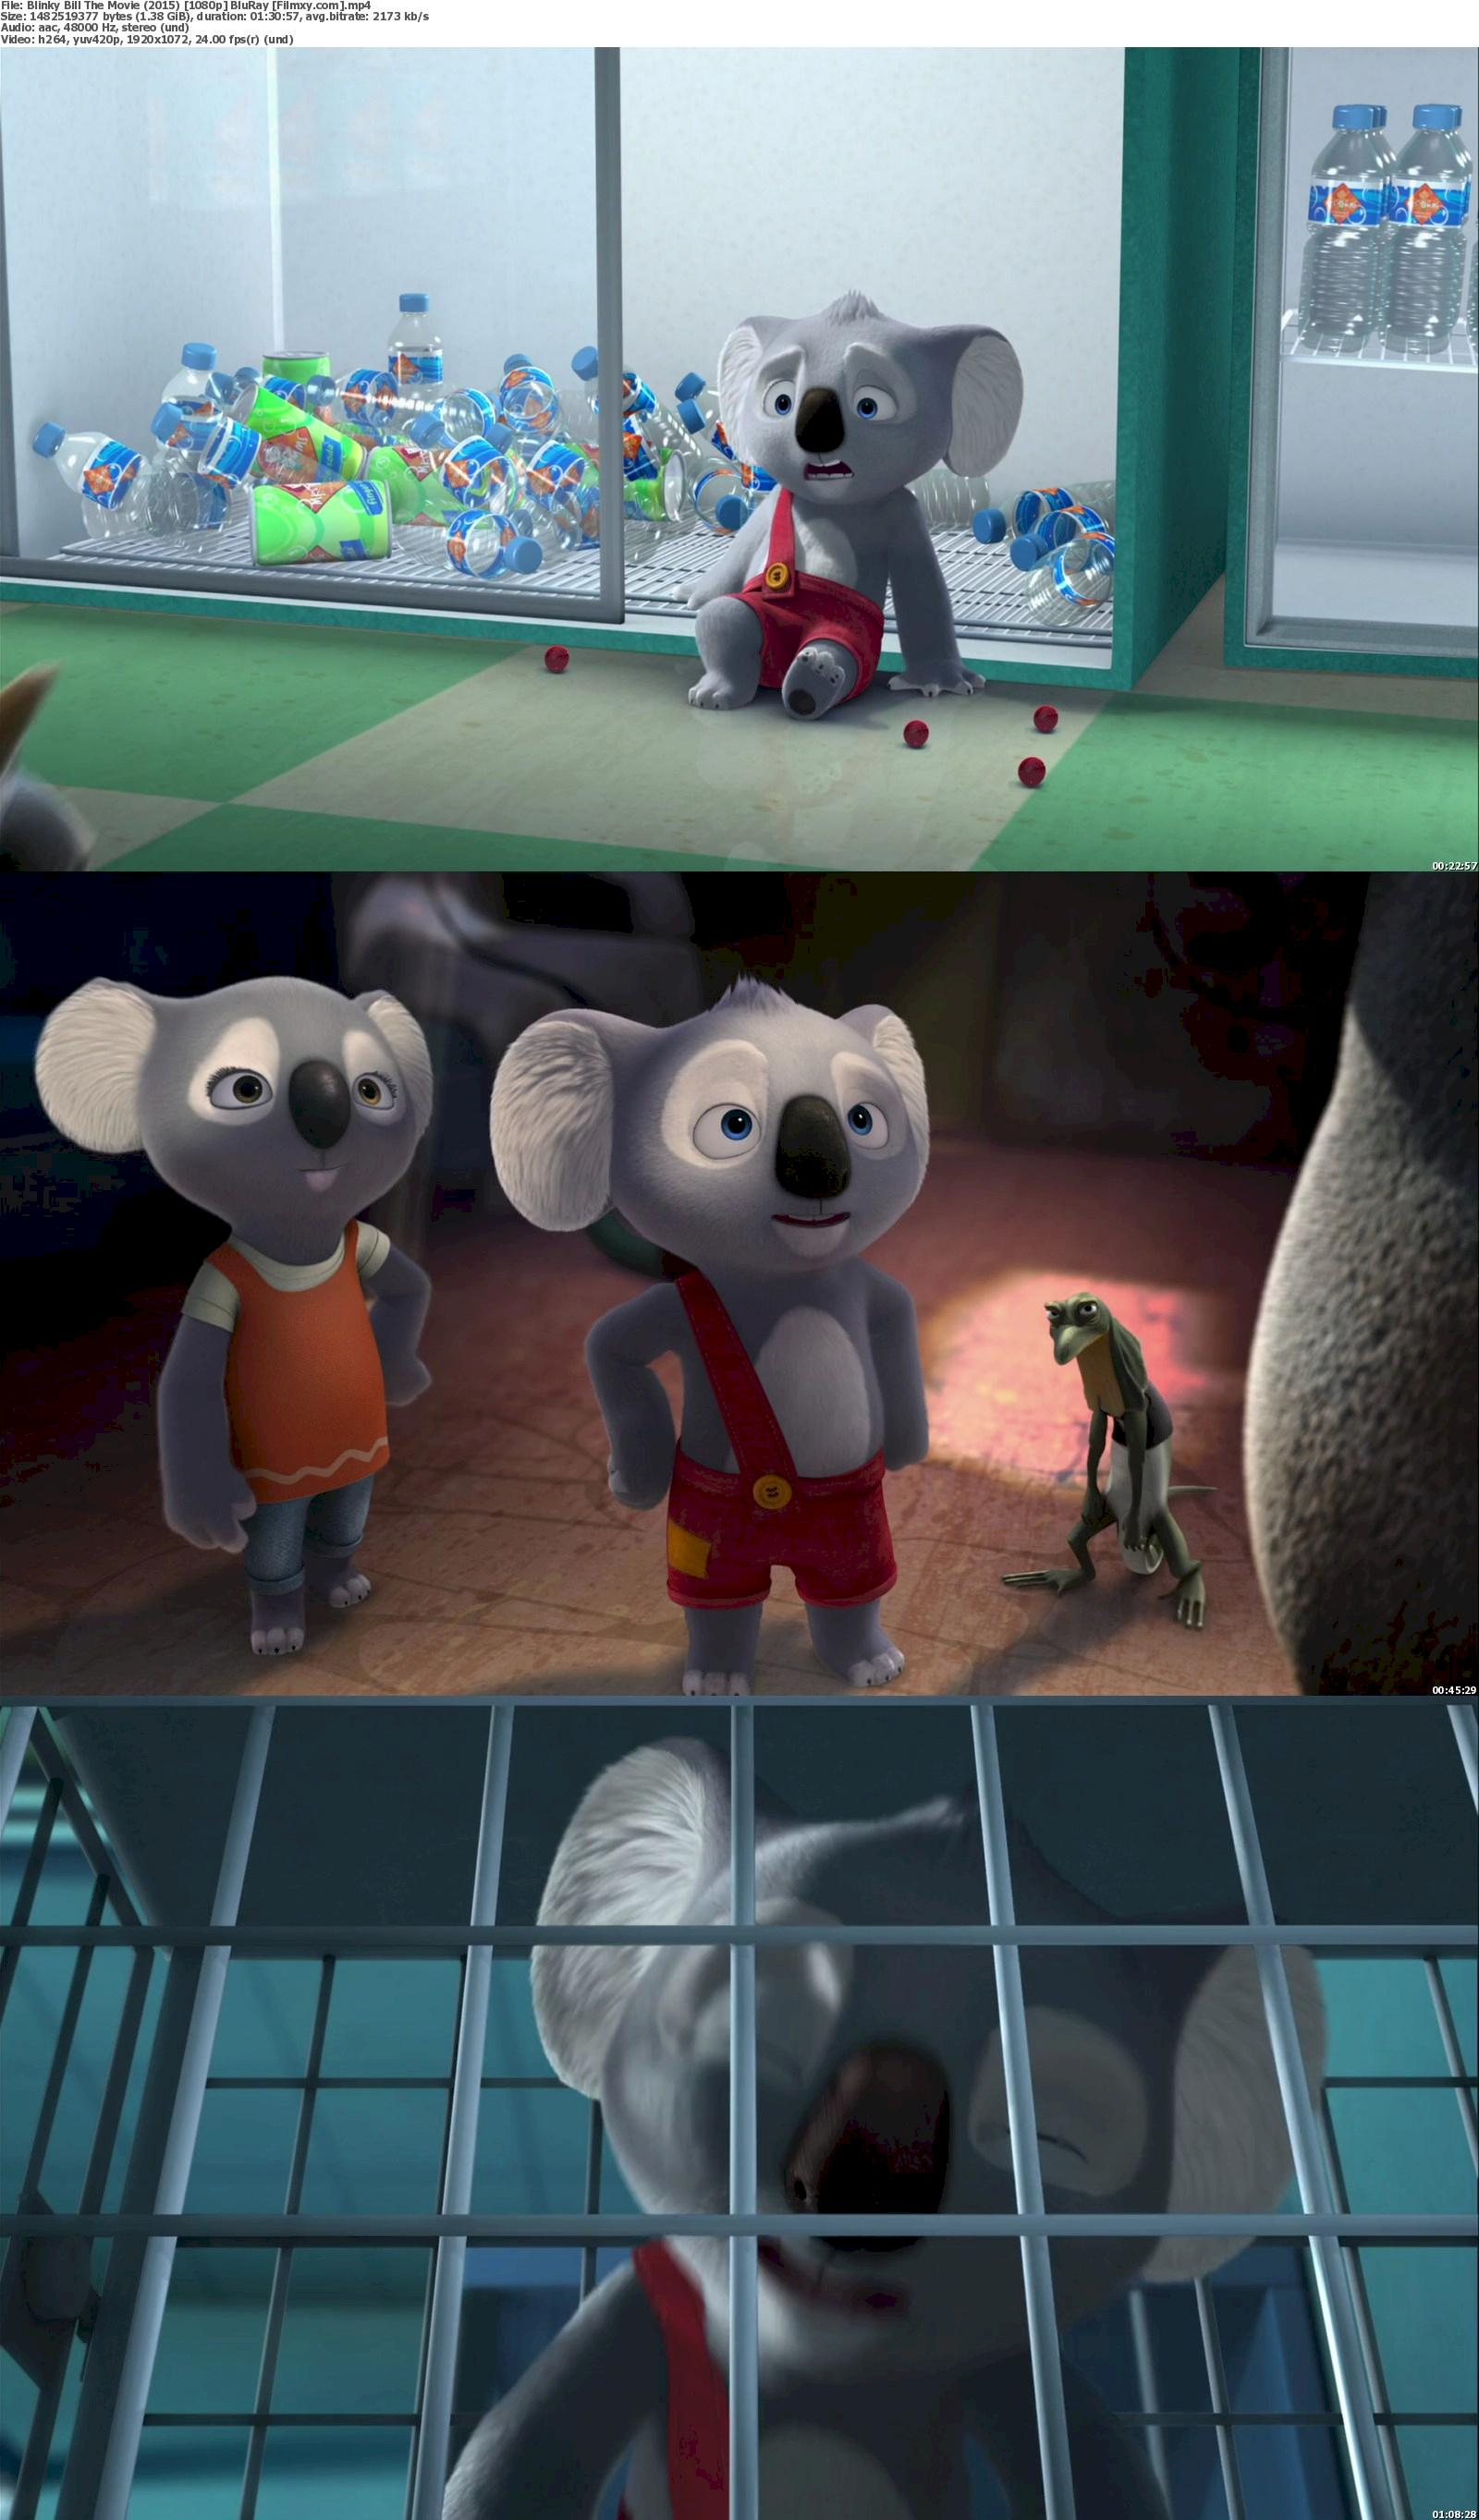 Blinky Bill The Movie (2015) 720p & 1080p BluRay Free Download 1080p Screenshot